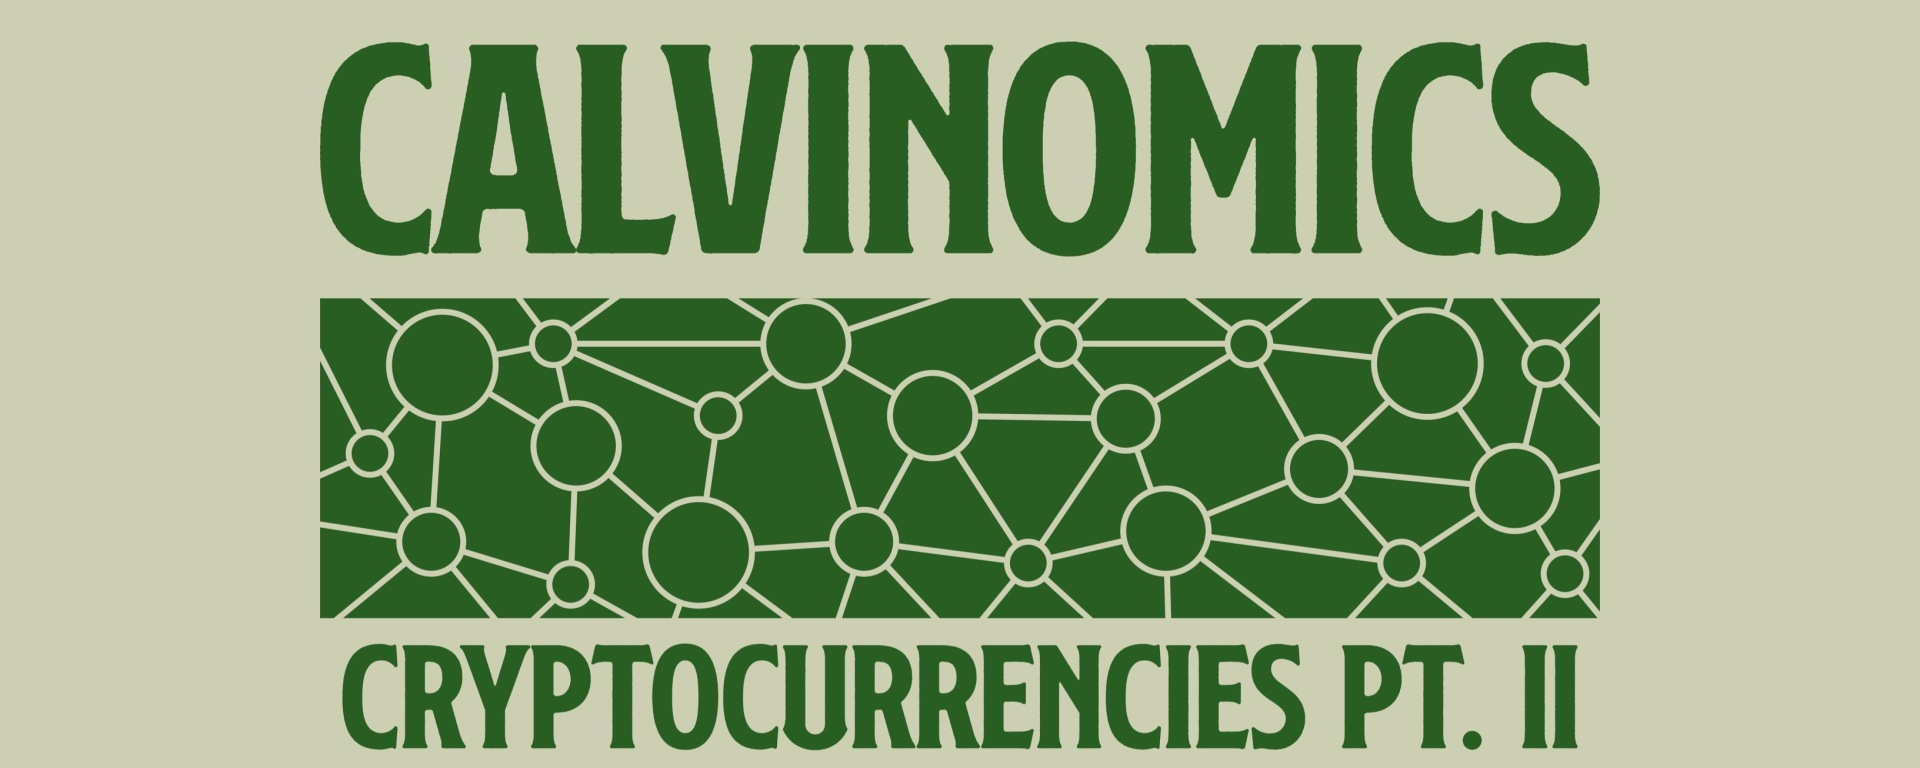 green text on light green background saying Calvinomics cryptocurrencies part 2 with connrction dots